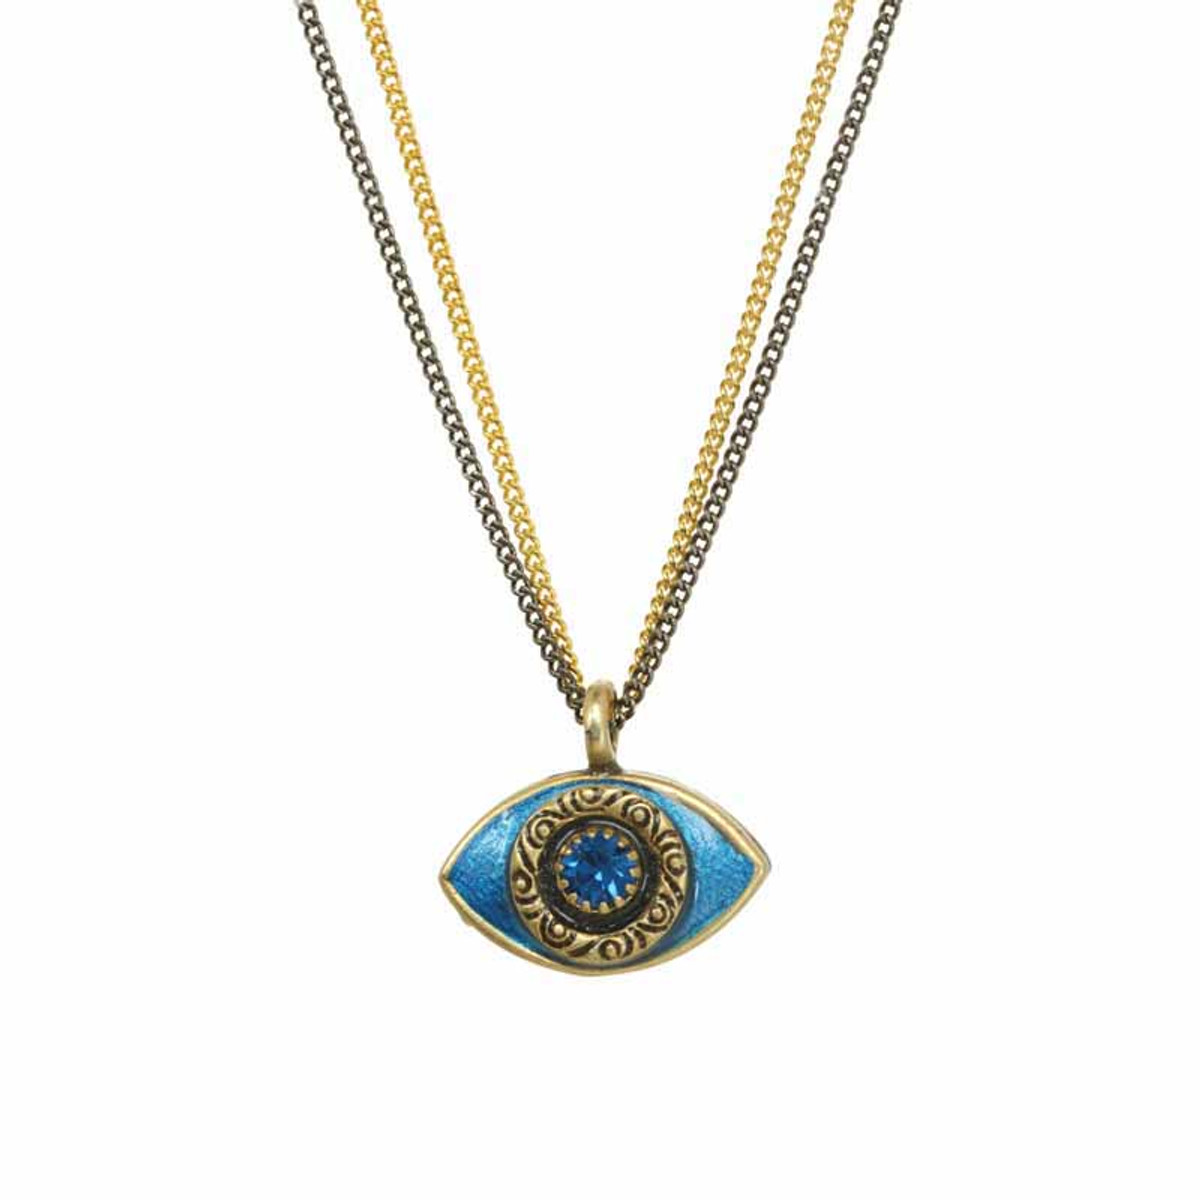 Michal Golan Small blue evil eye necklace